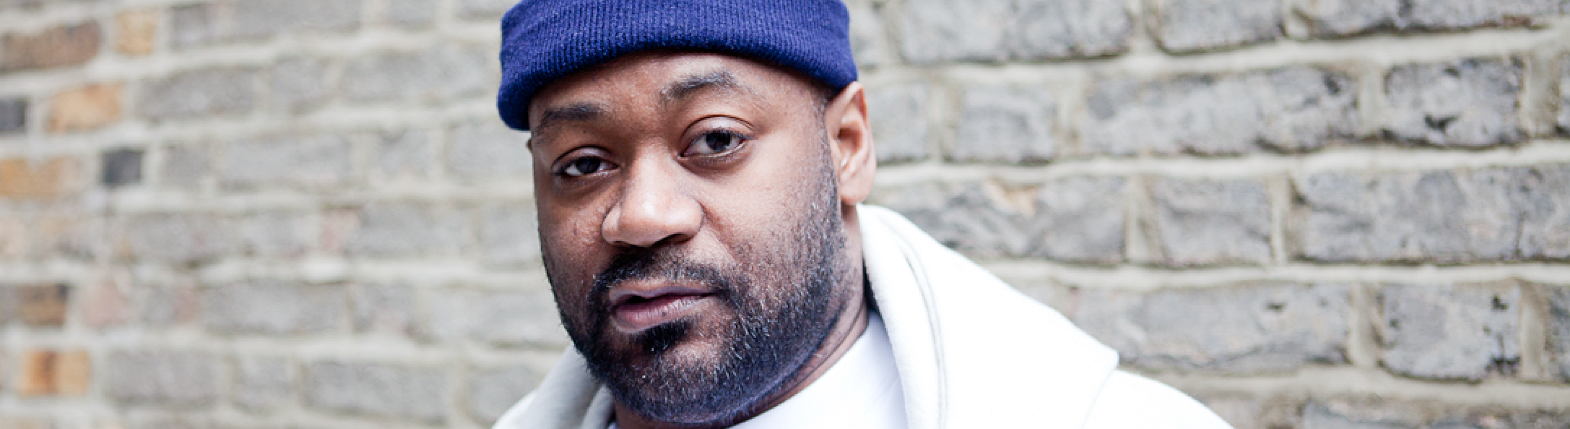 Ghostface Killah Co-founds a Cryptocurrency Company